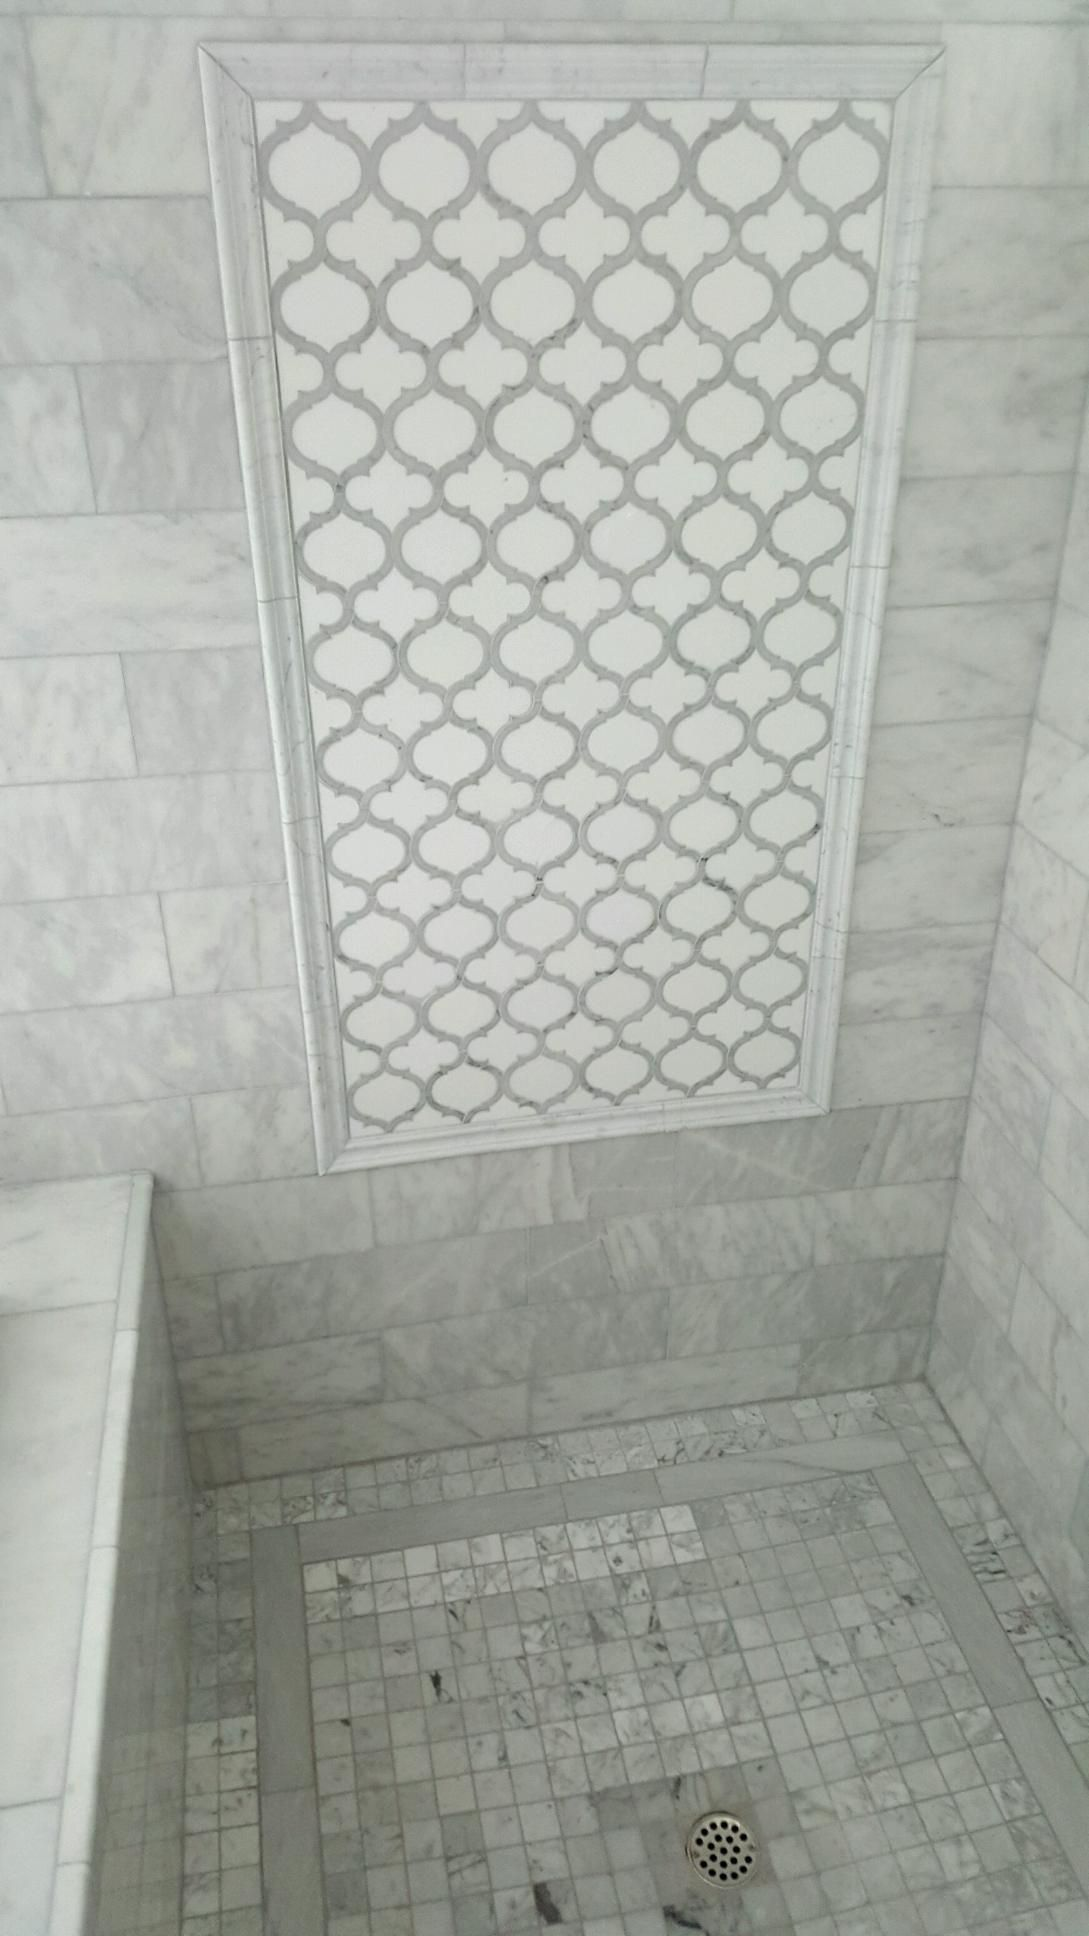 Pin By Joan Chase On Reno Hexagon Tile Bathroom Floor Marble Bathroom Floor Hexagon Tile Bathroom